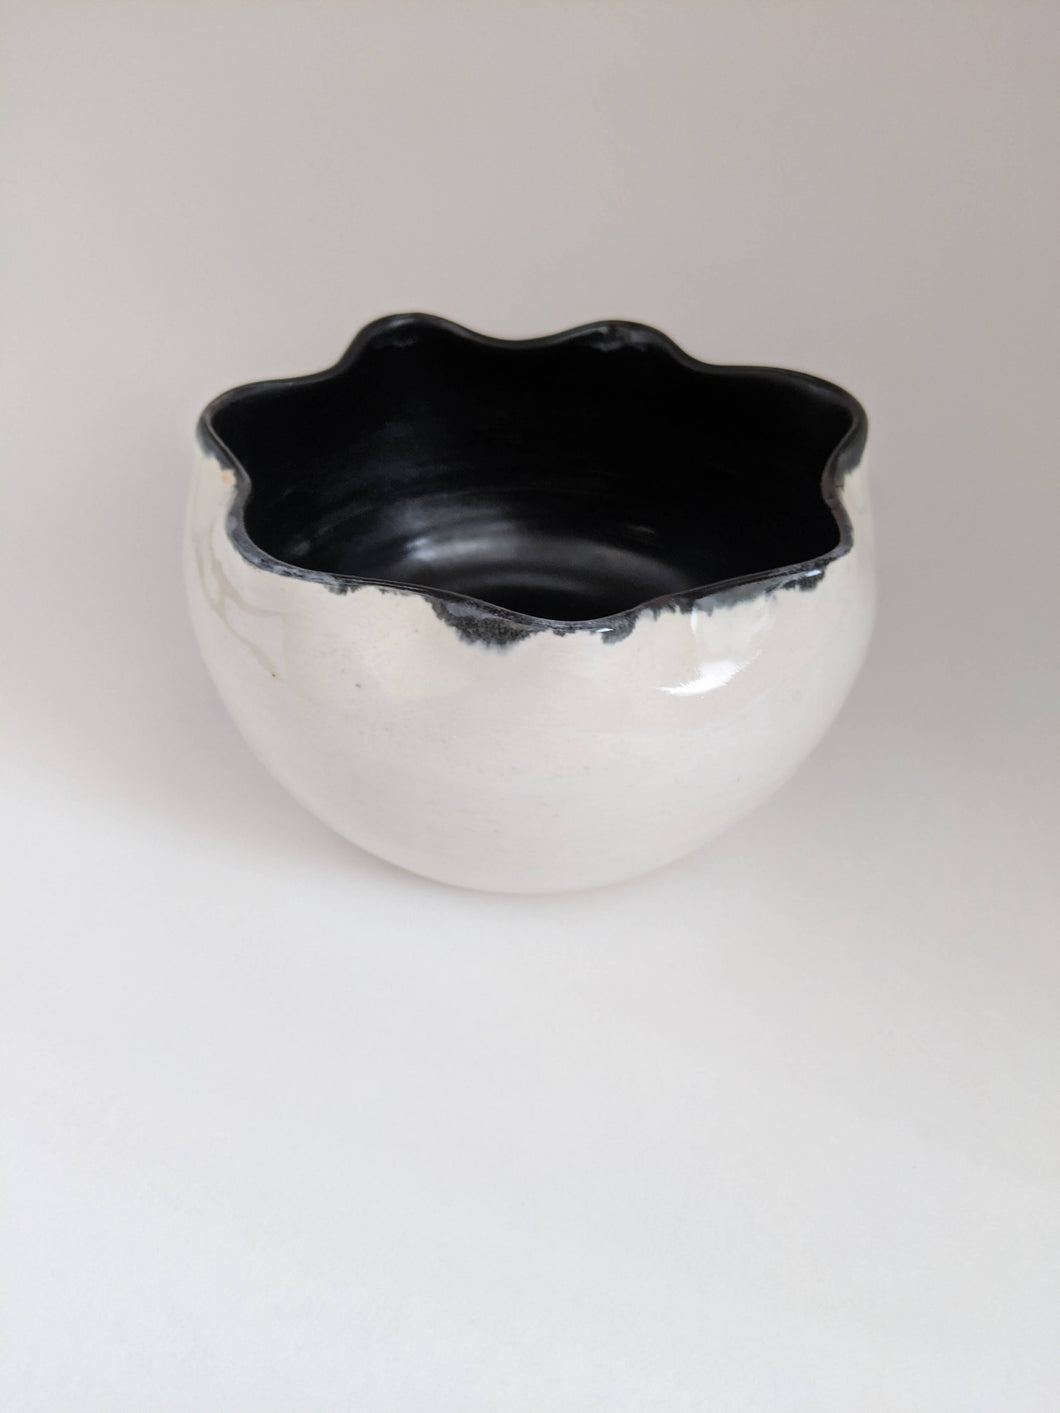 Flower top black and white Ceramic Bowl